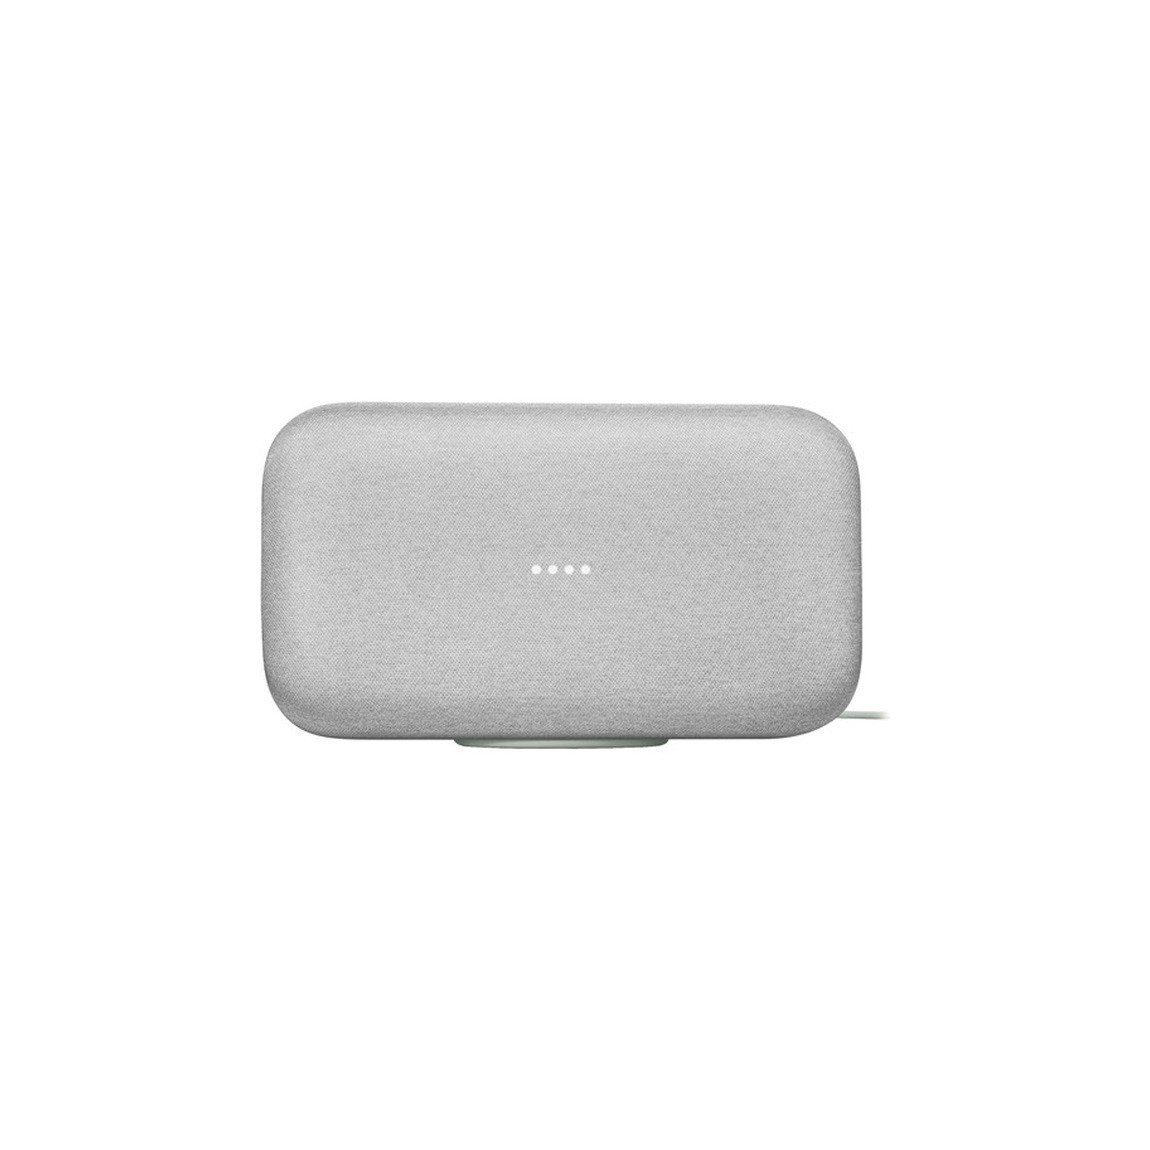 Розумна колонка Google Home Max Chalk (EU - версія)